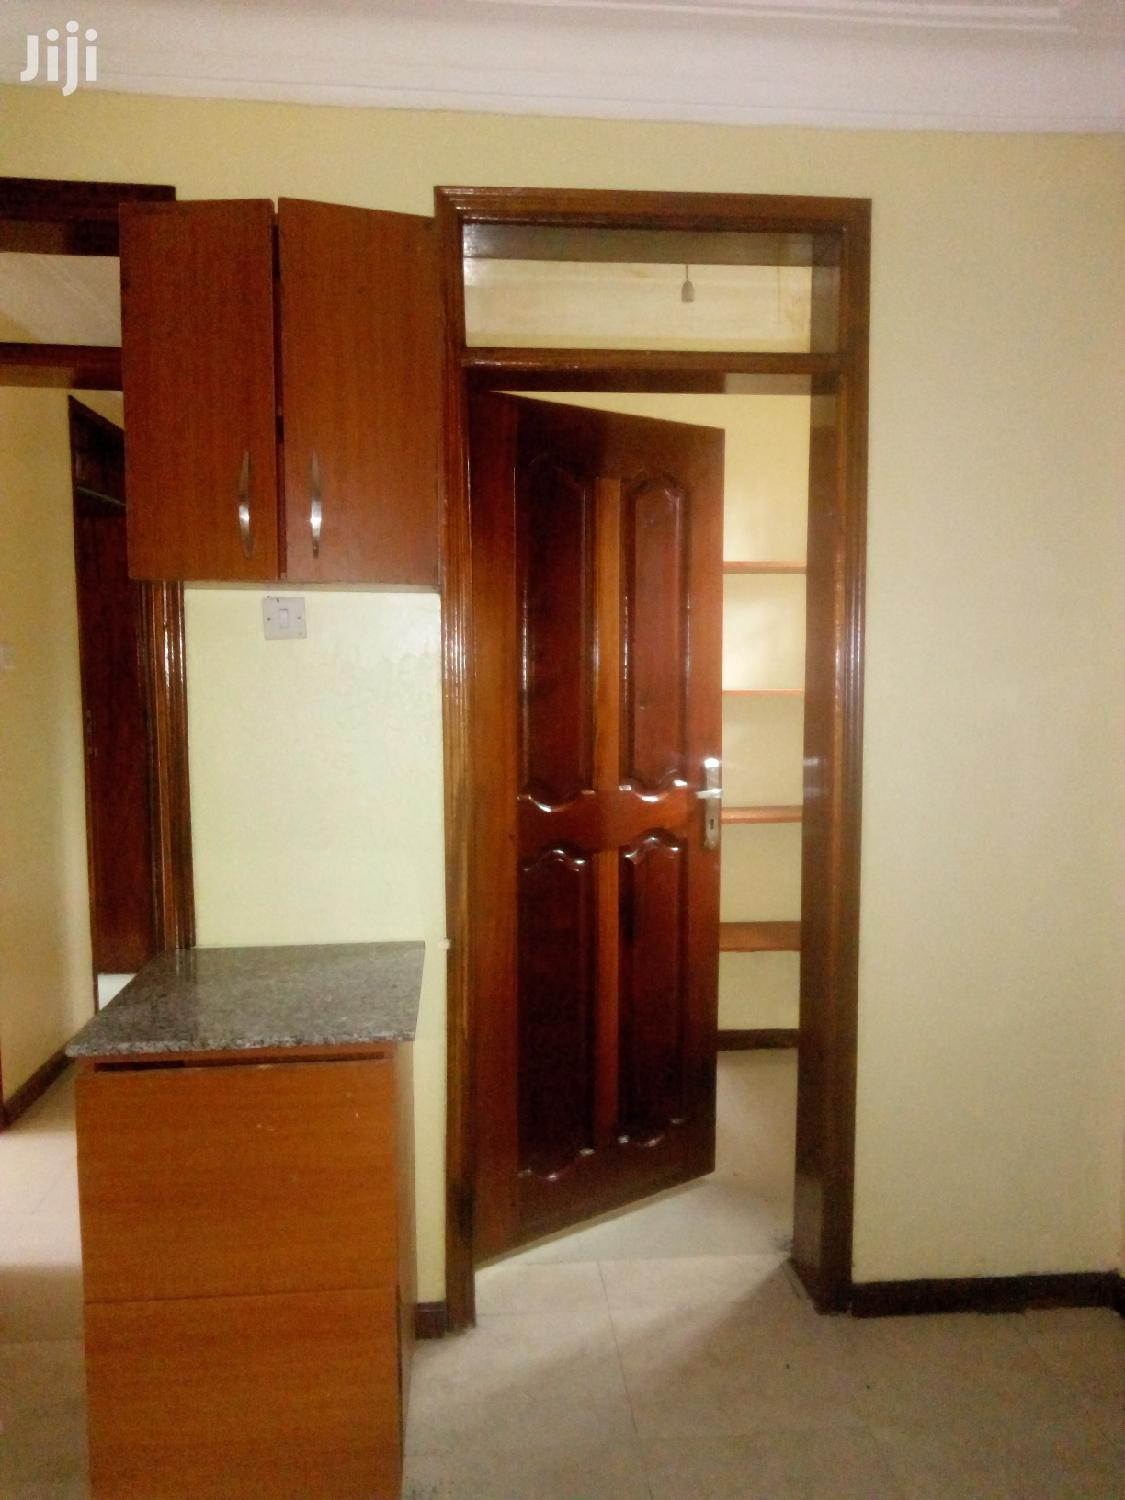 Two Bedrooms Self Contained House For Rent At Bweyogerere   Houses & Apartments For Rent for sale in Kampala, Central Region, Uganda